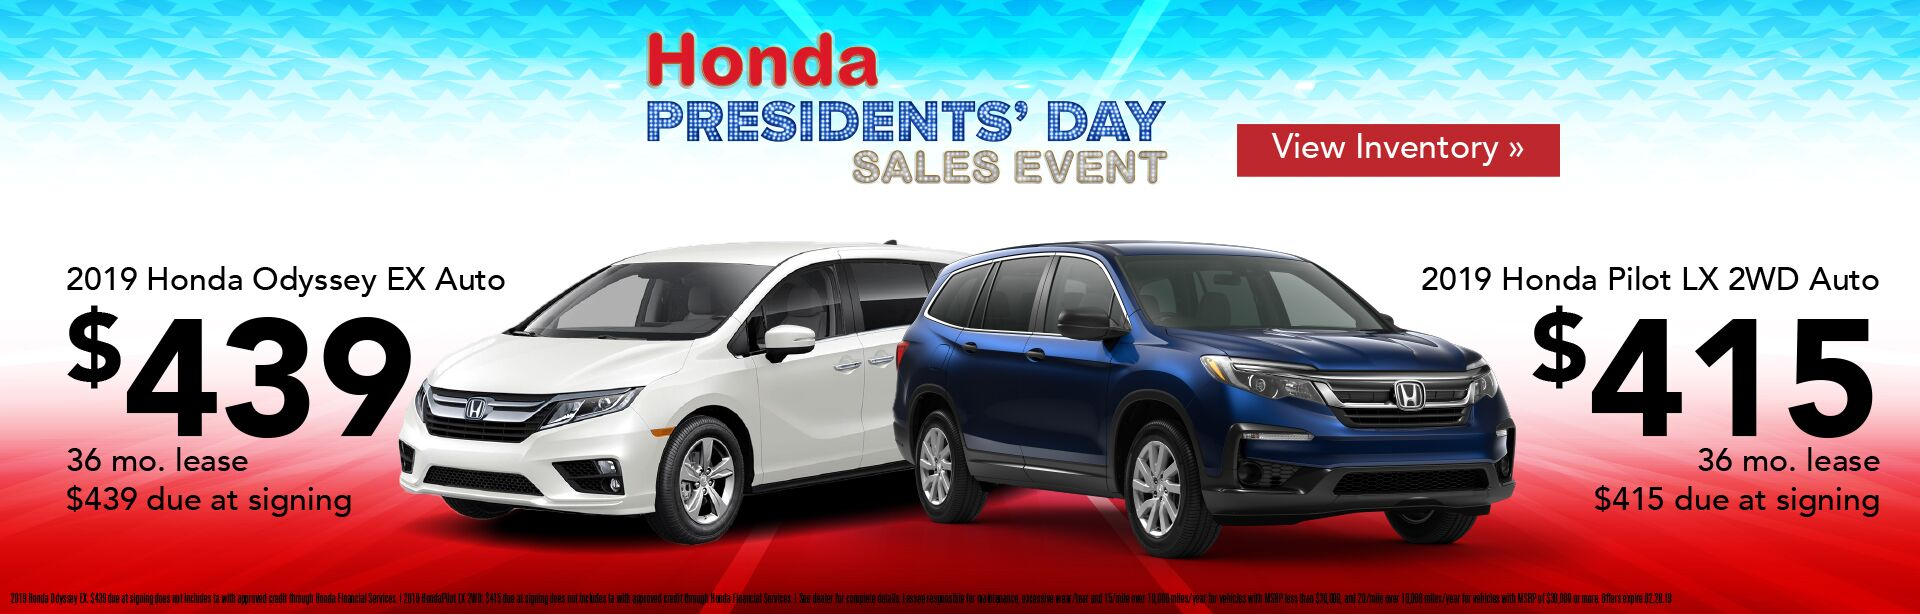 Honda Dealership Chicago Il Used Cars Continental Honda